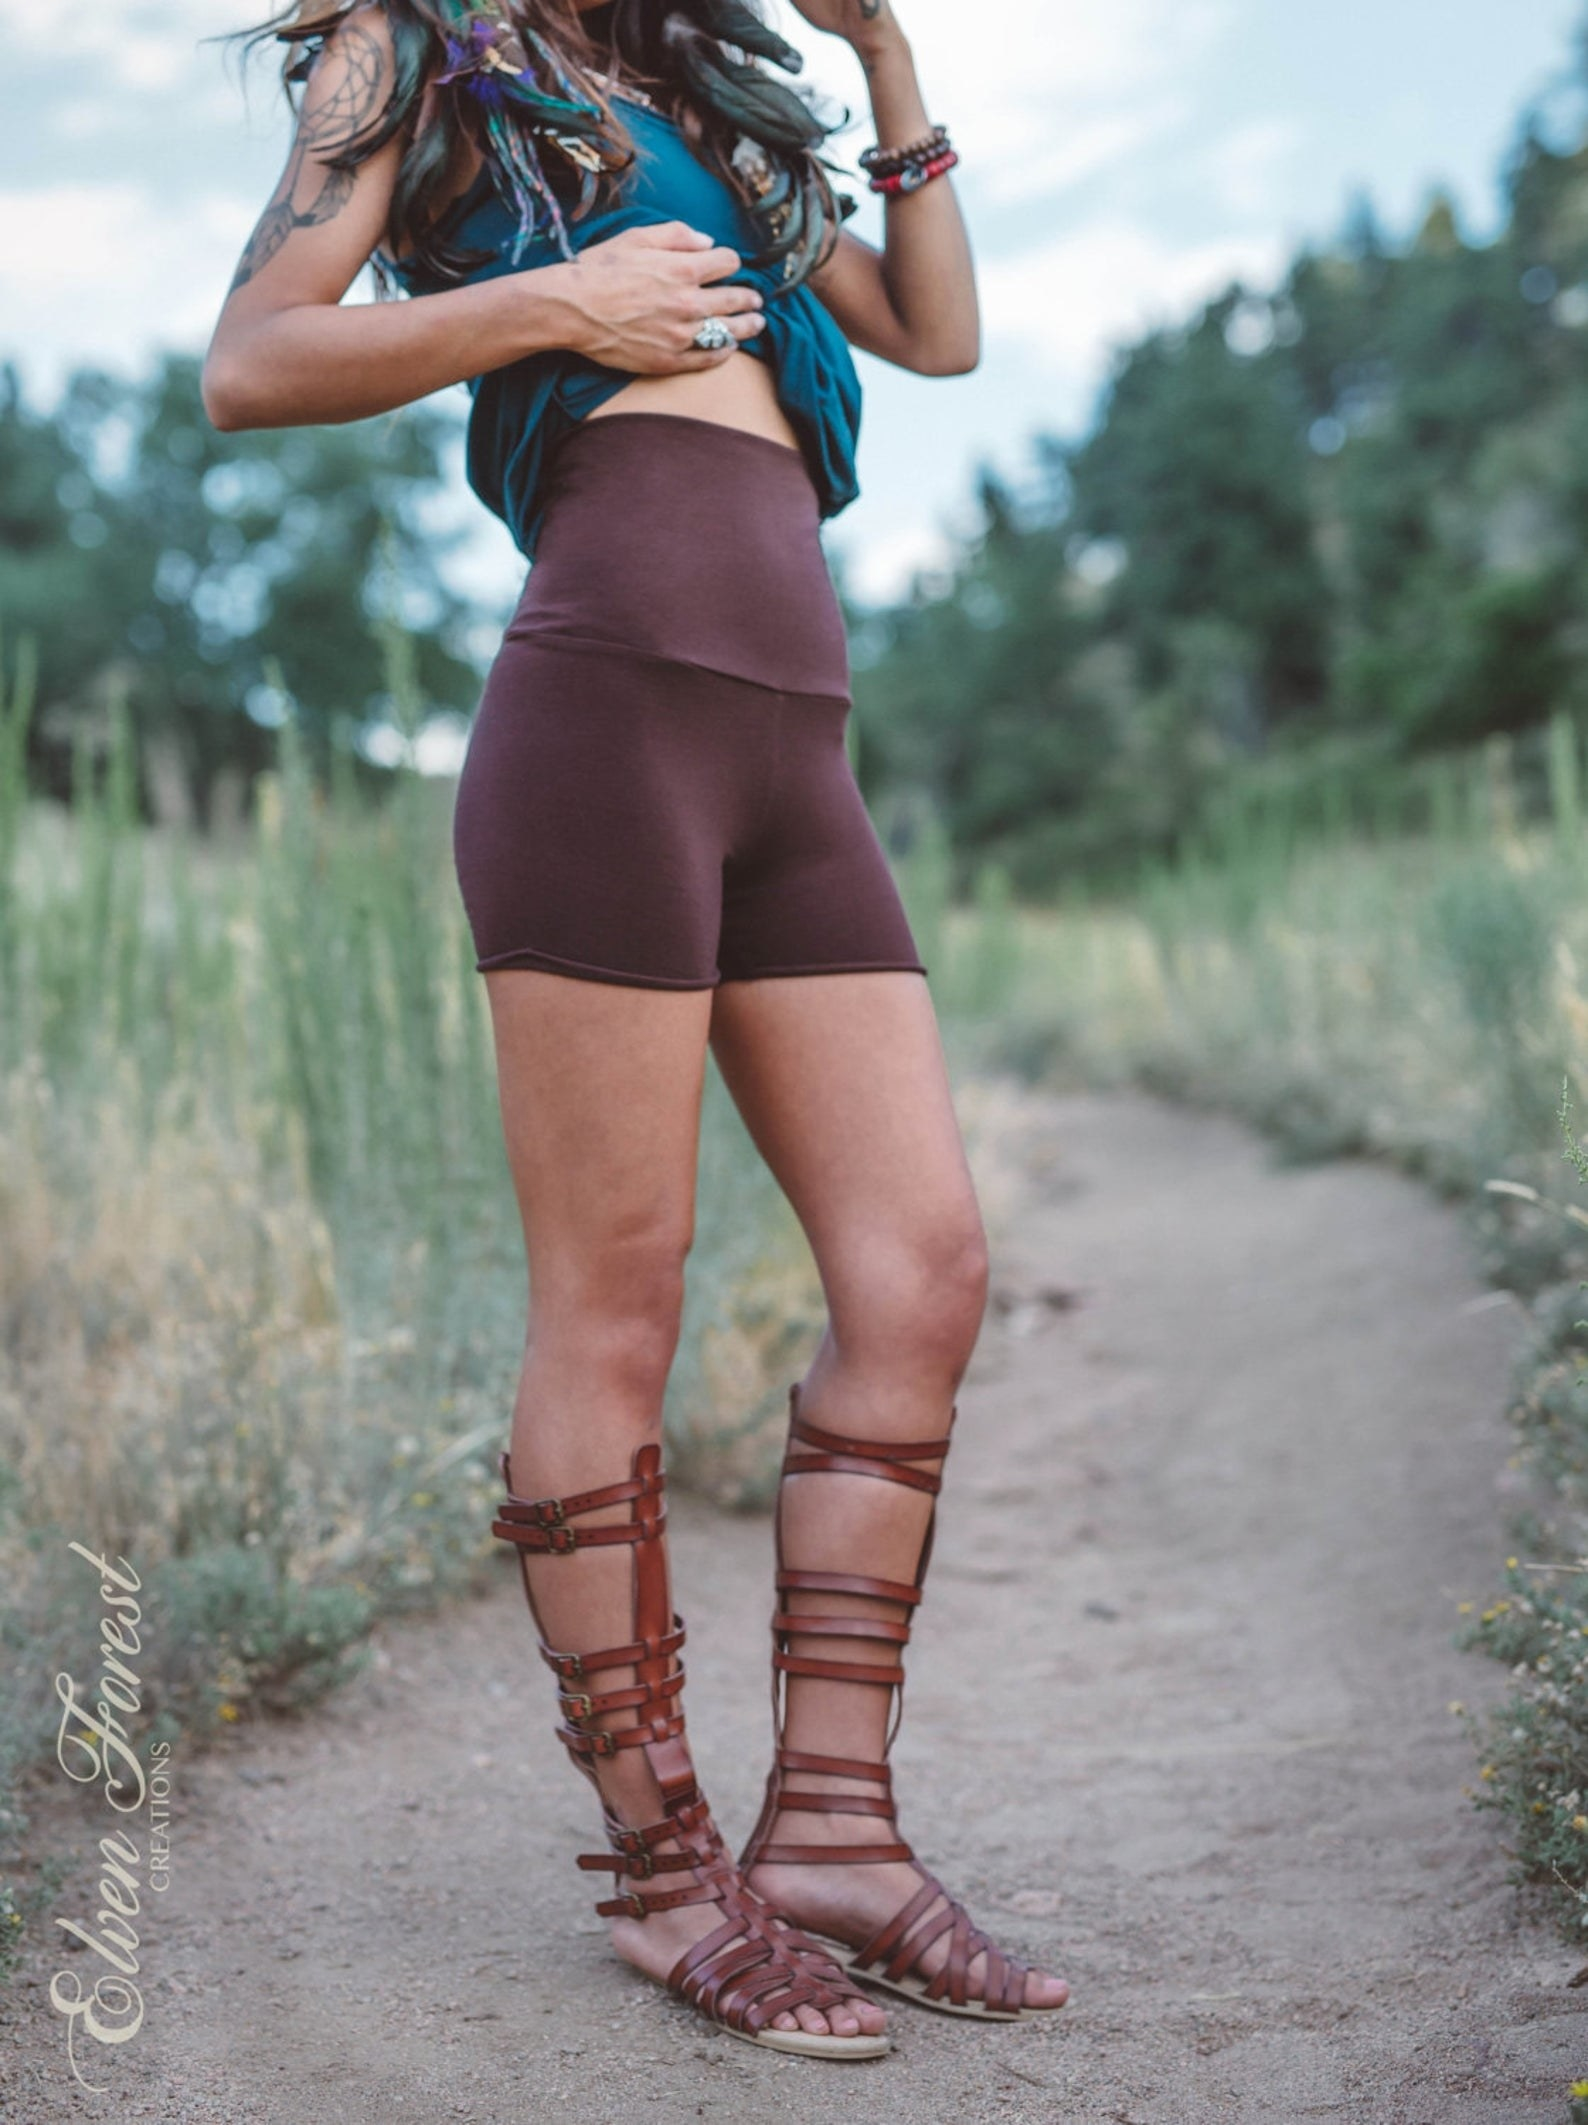 A model in brown high-waisted bike shirts that fall upper mid-thigh